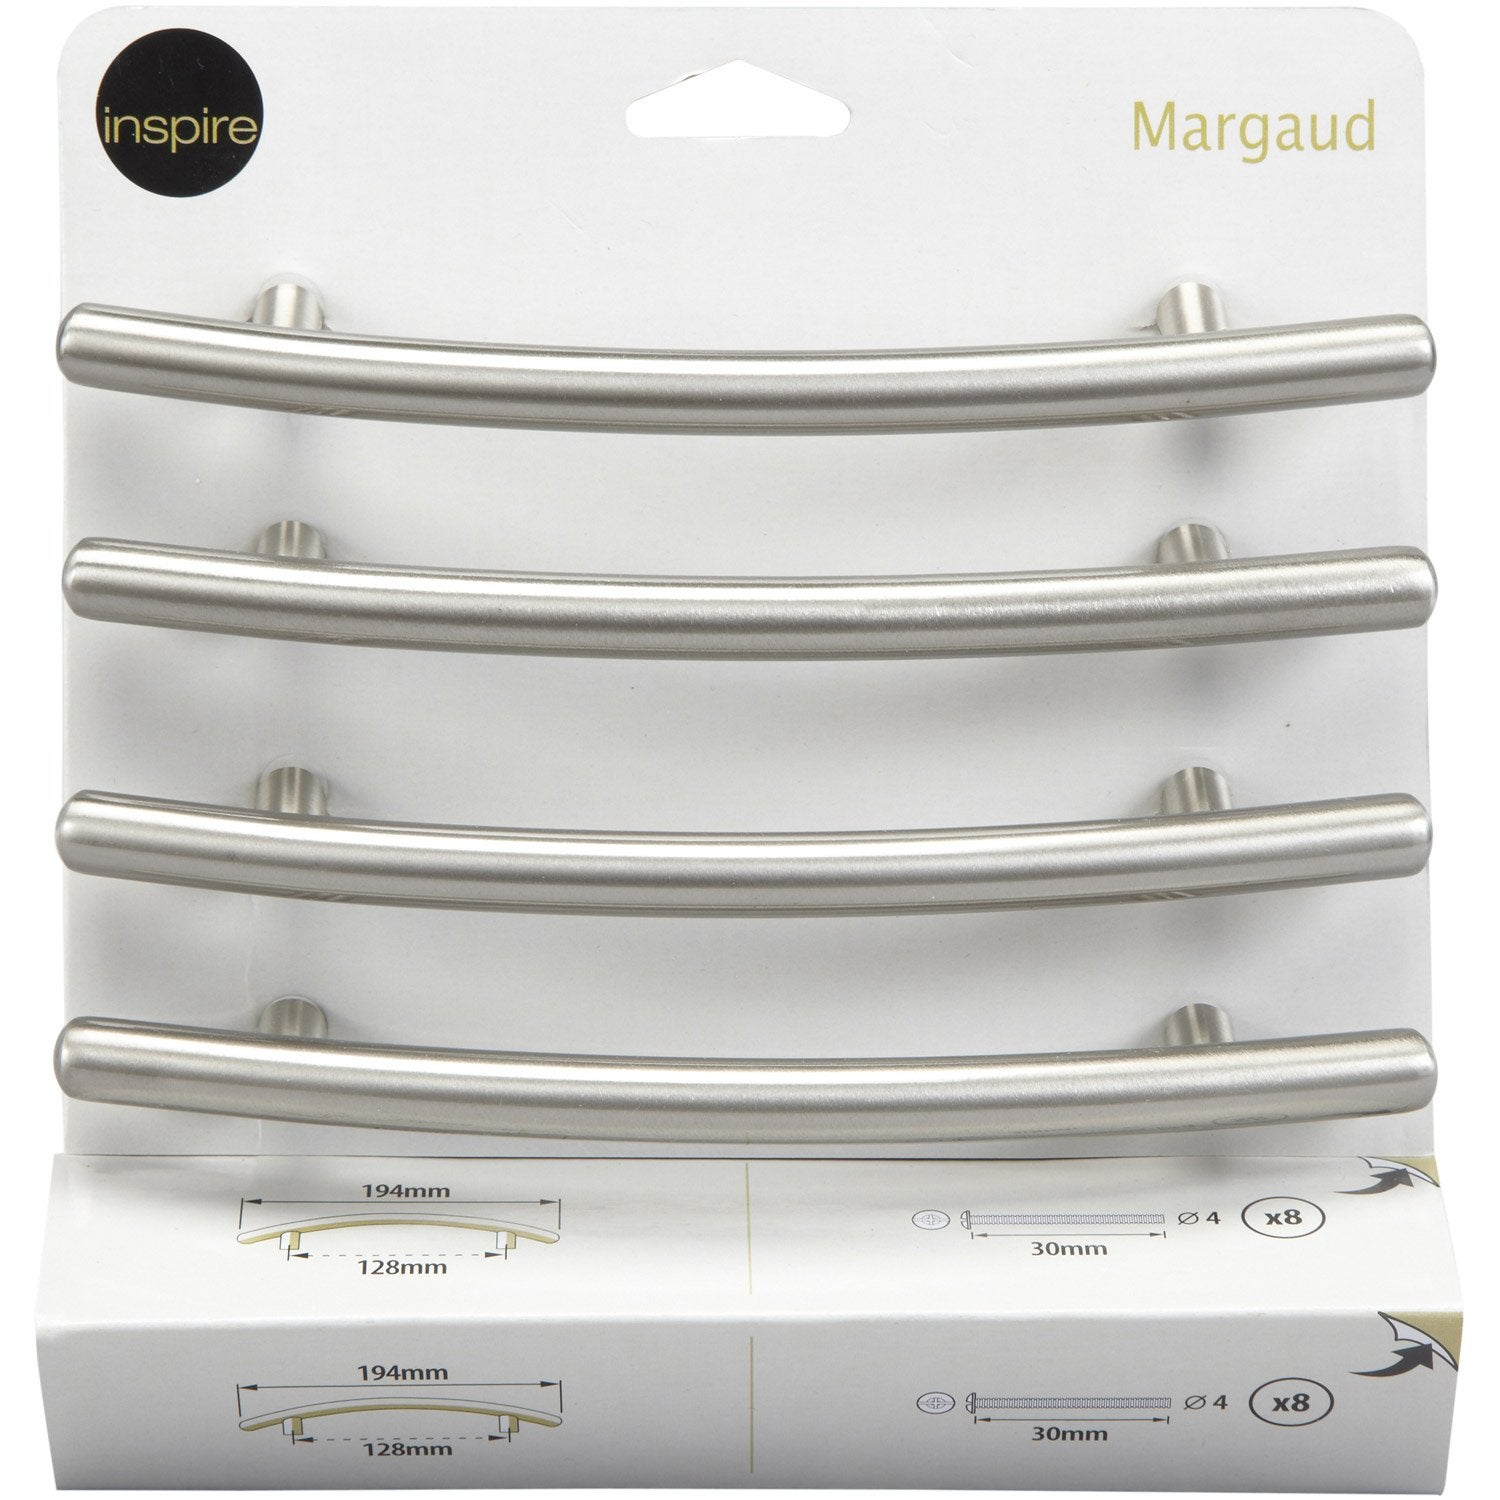 Lot de 4 poign es de meuble margaud acier bross entraxe for Portes elements cuisine leroy merlin